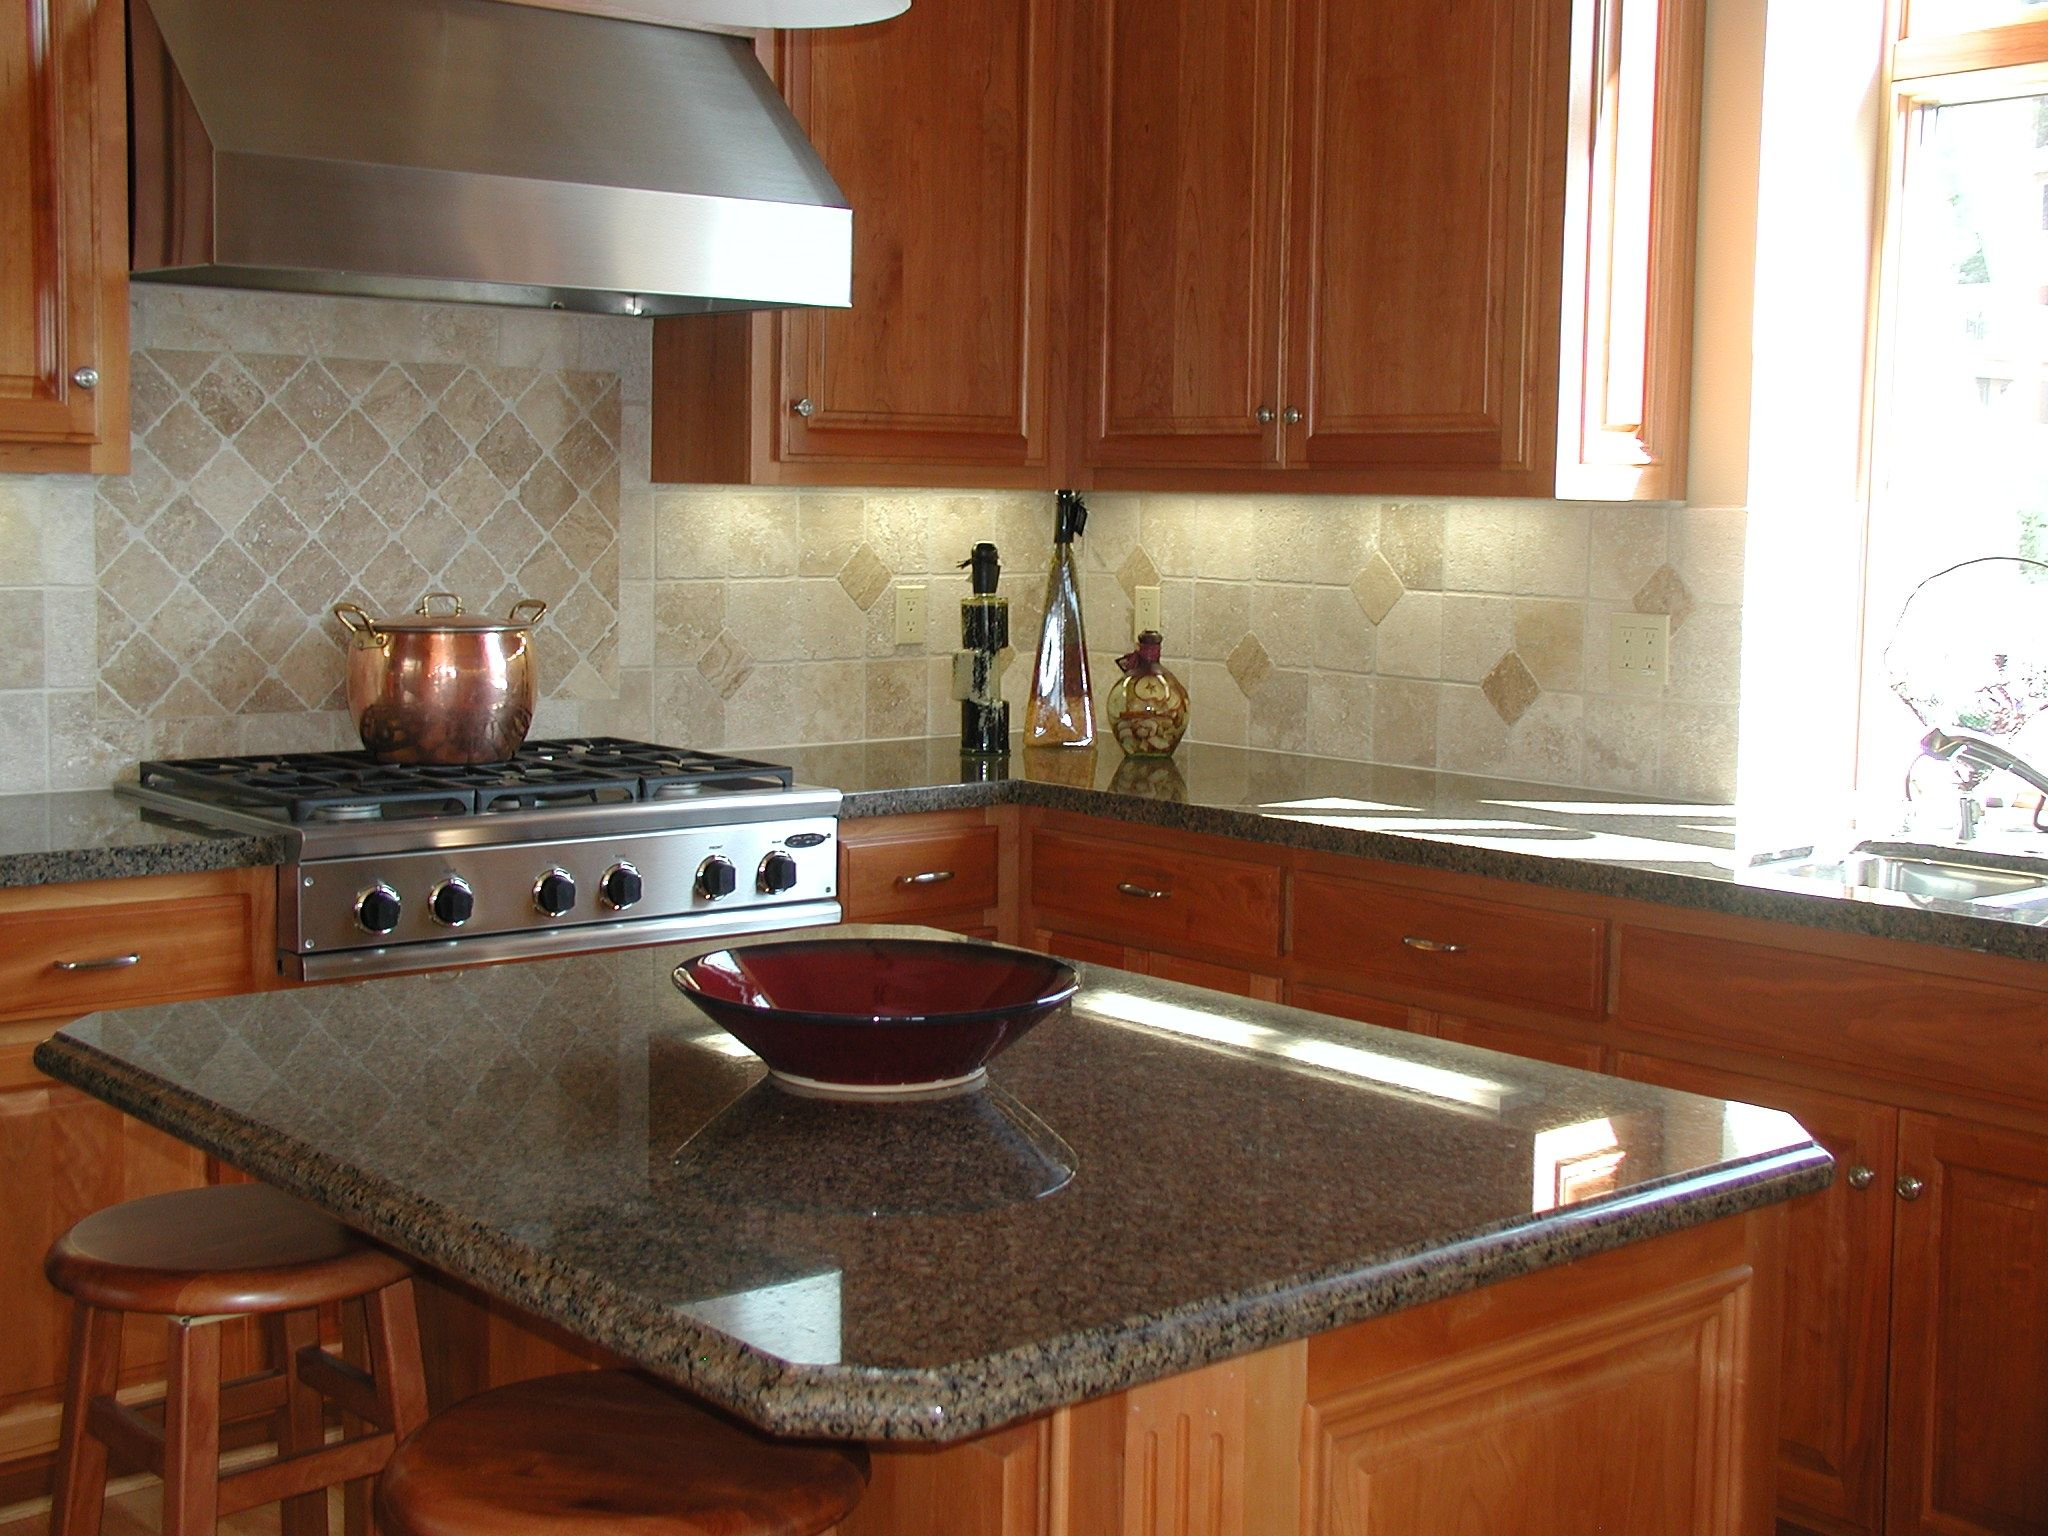 countertops are not quite so dark but look nice and the backsplash is good kitchen designs with kitchen - Kitchen Island Countertop